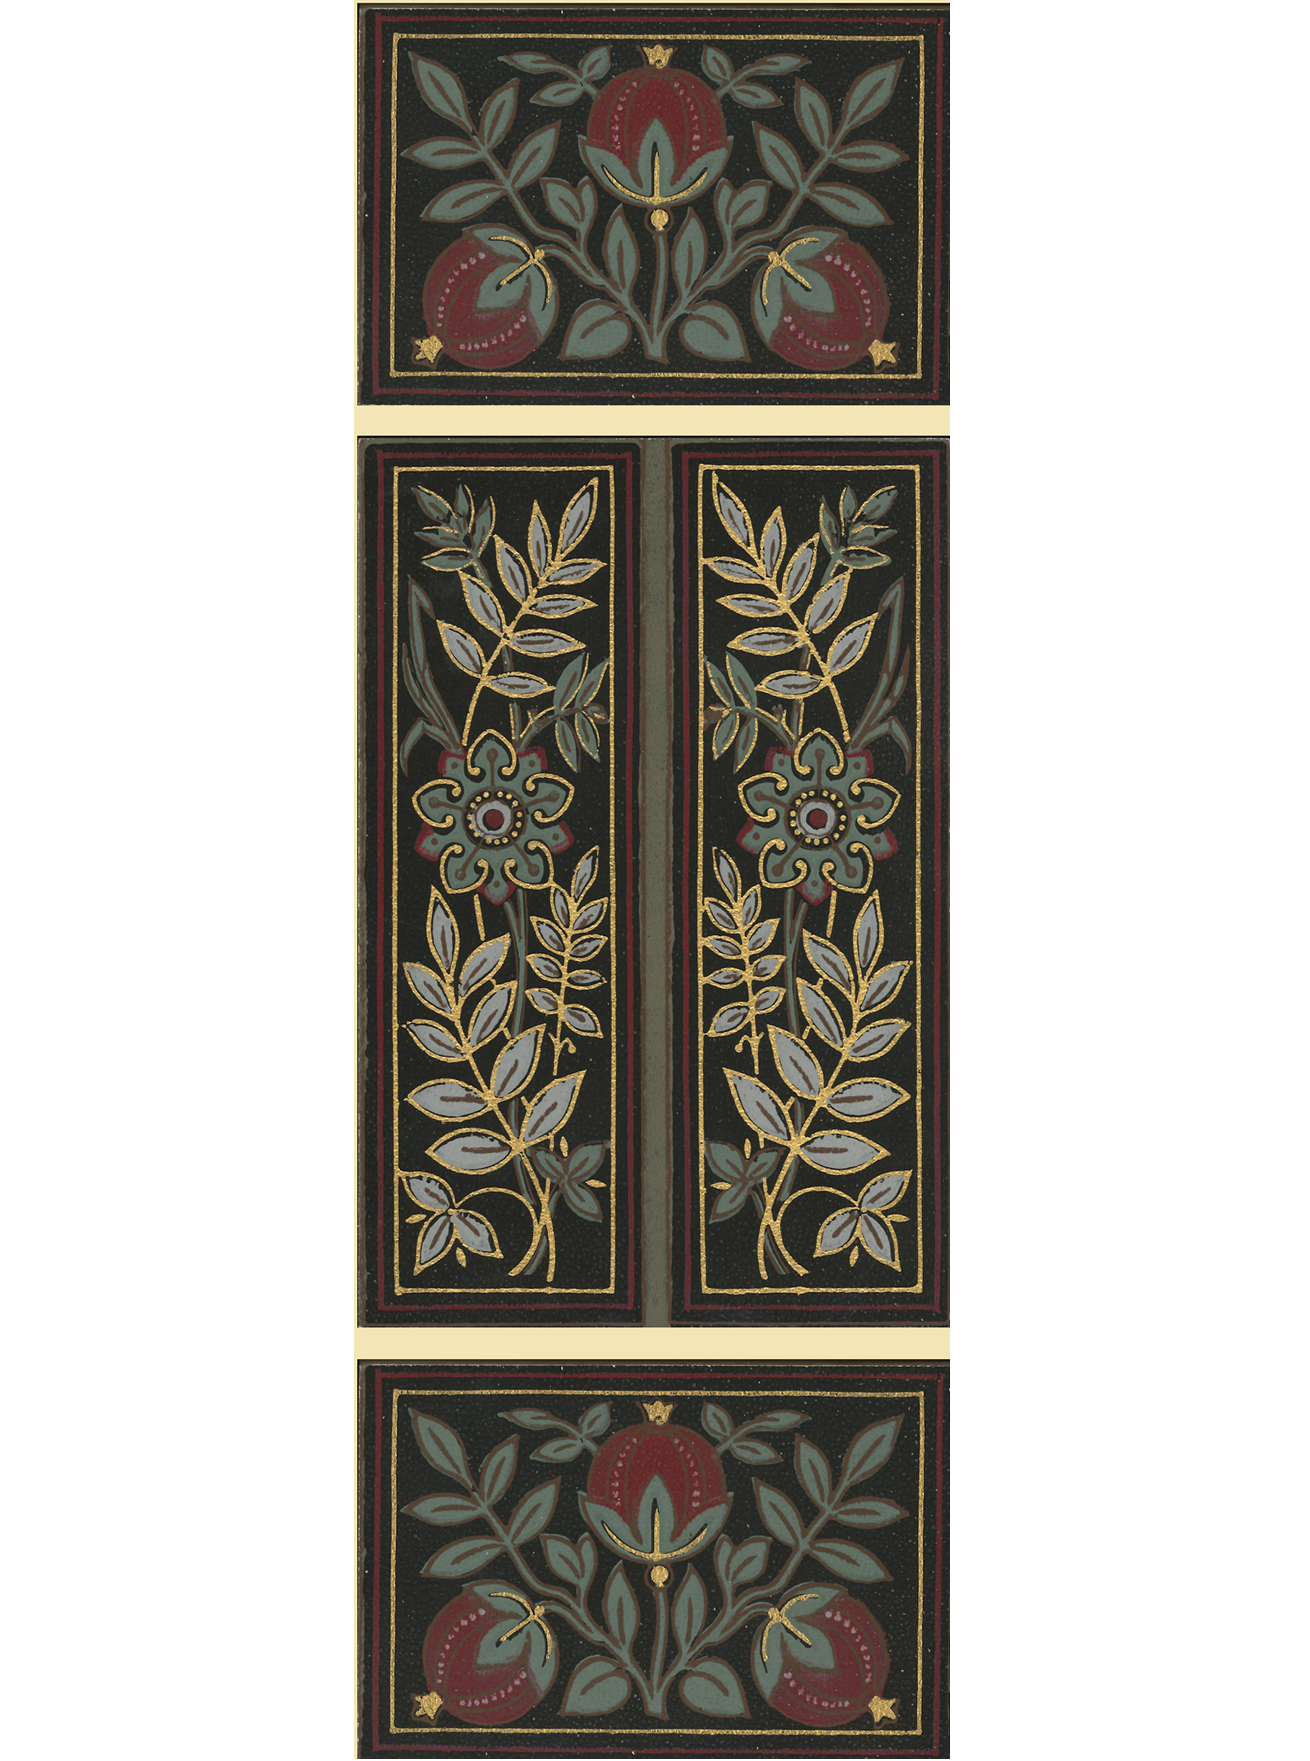 Gilt Aesthetic Tile Wallpaper Accent Panel - Triptych-SOLD